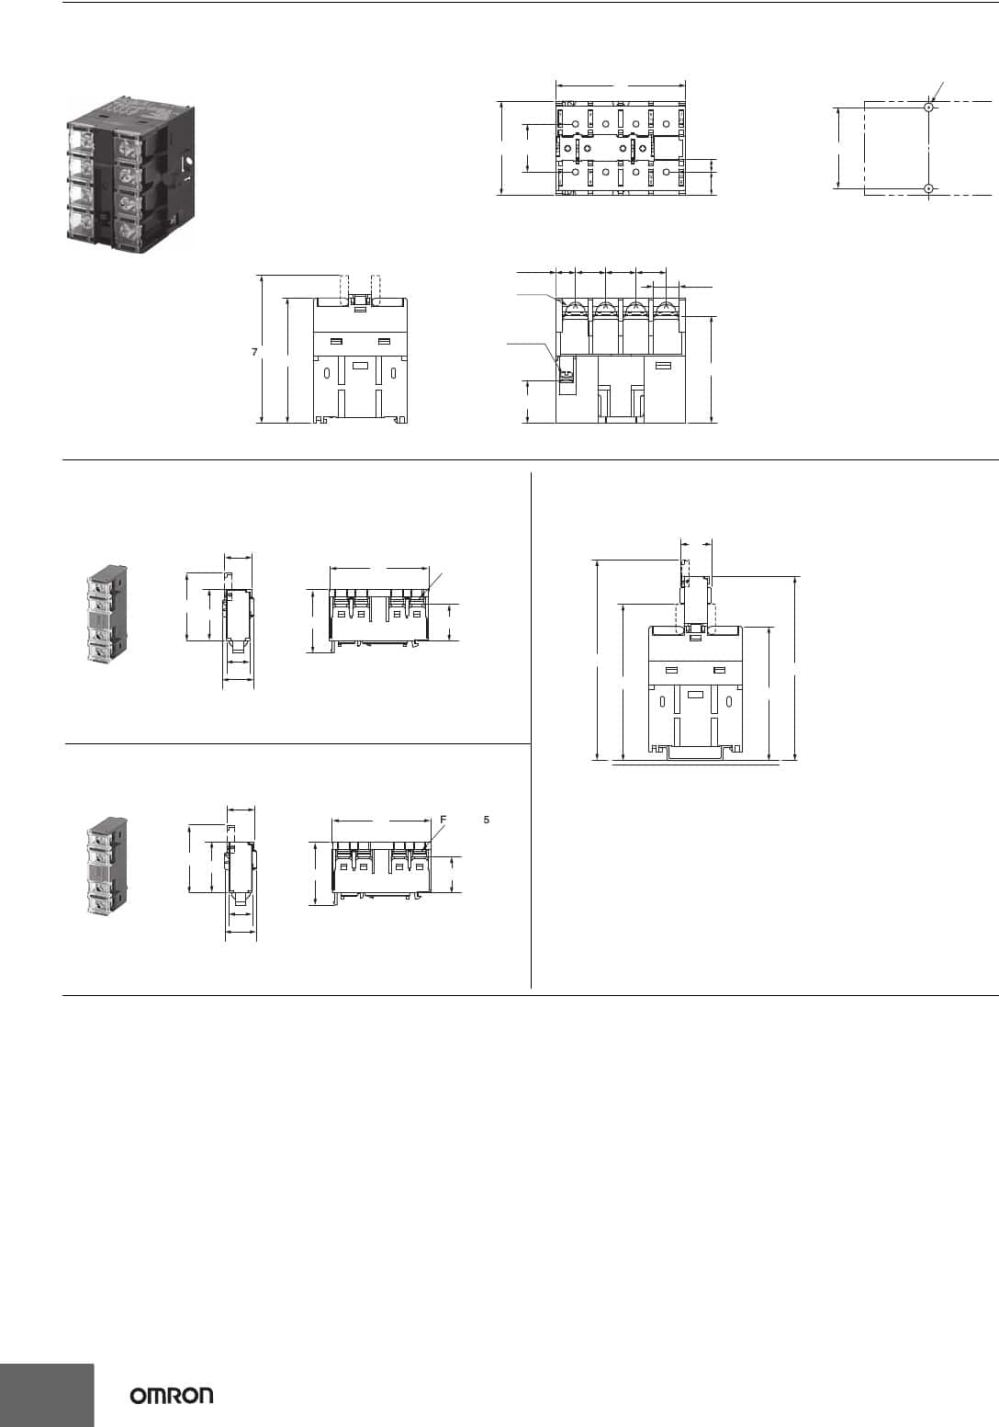 medium resolution of g7z series datasheet omron automation and safety digikey supply us 0 62 0 69 omron omron on 5 terminal relay diagram omron